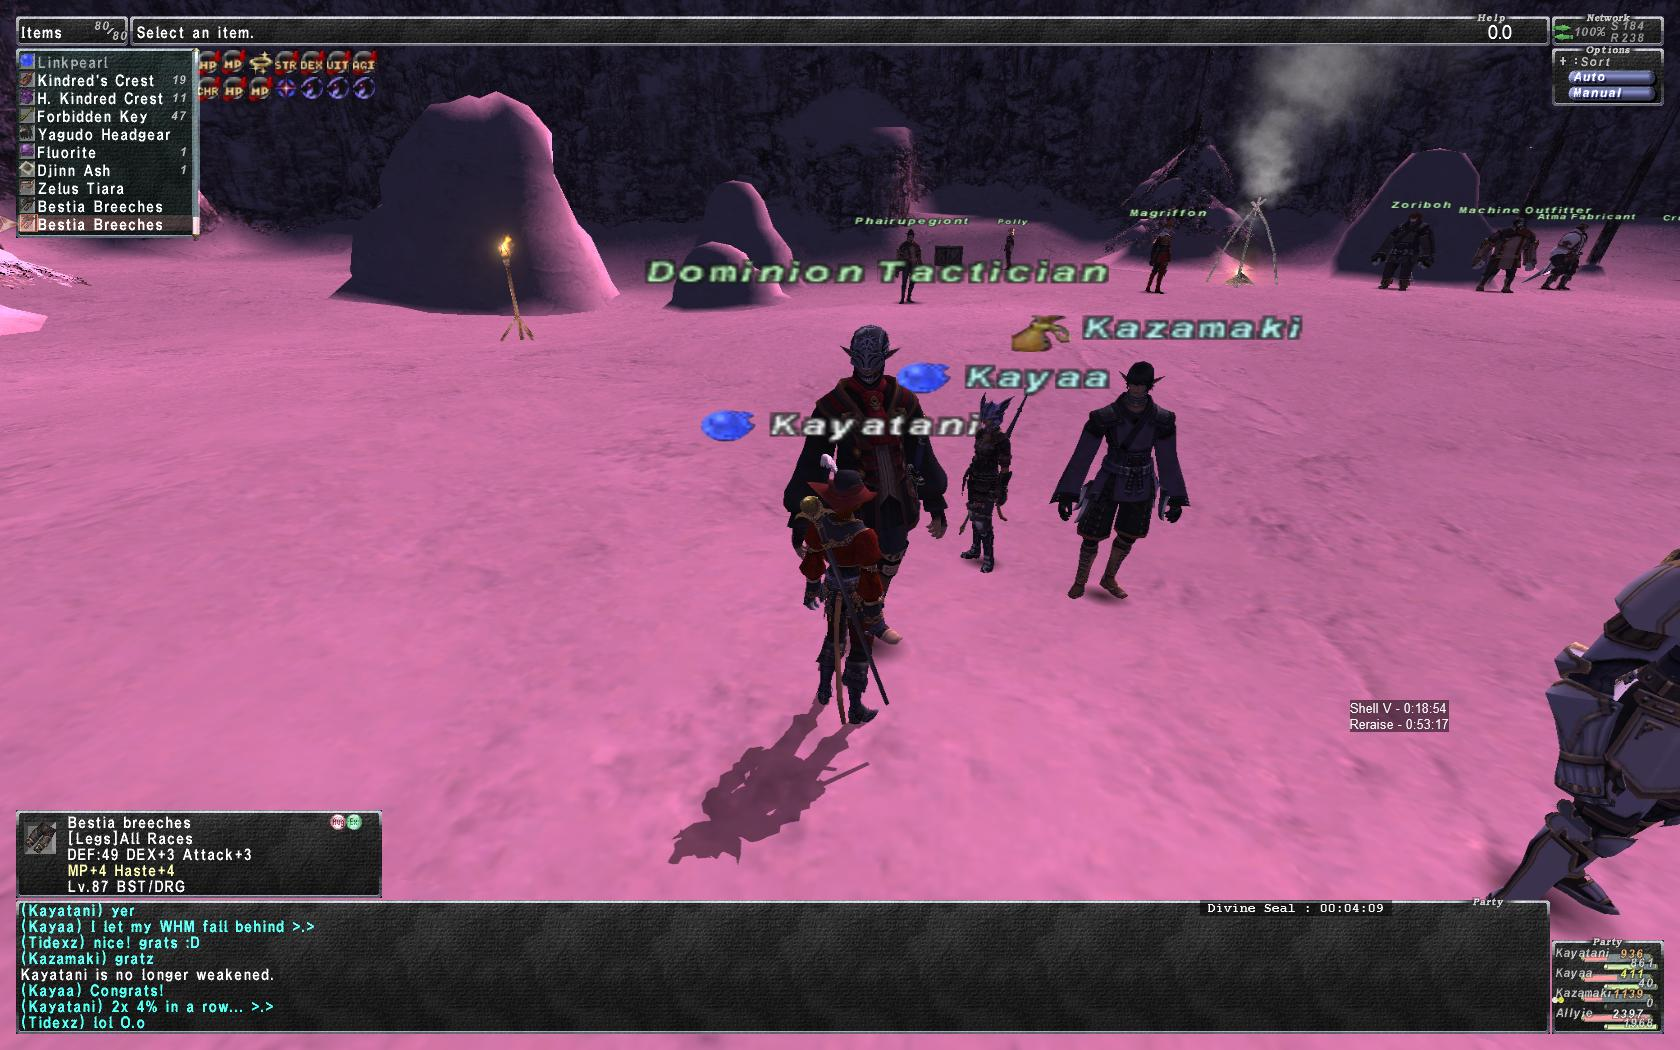 kayatani ffxi augment with stone after shit your breaking ended posted whats augments nekodance overshooting wiki magic attack bonus decided skirmish show augmented items staff post went today lucky